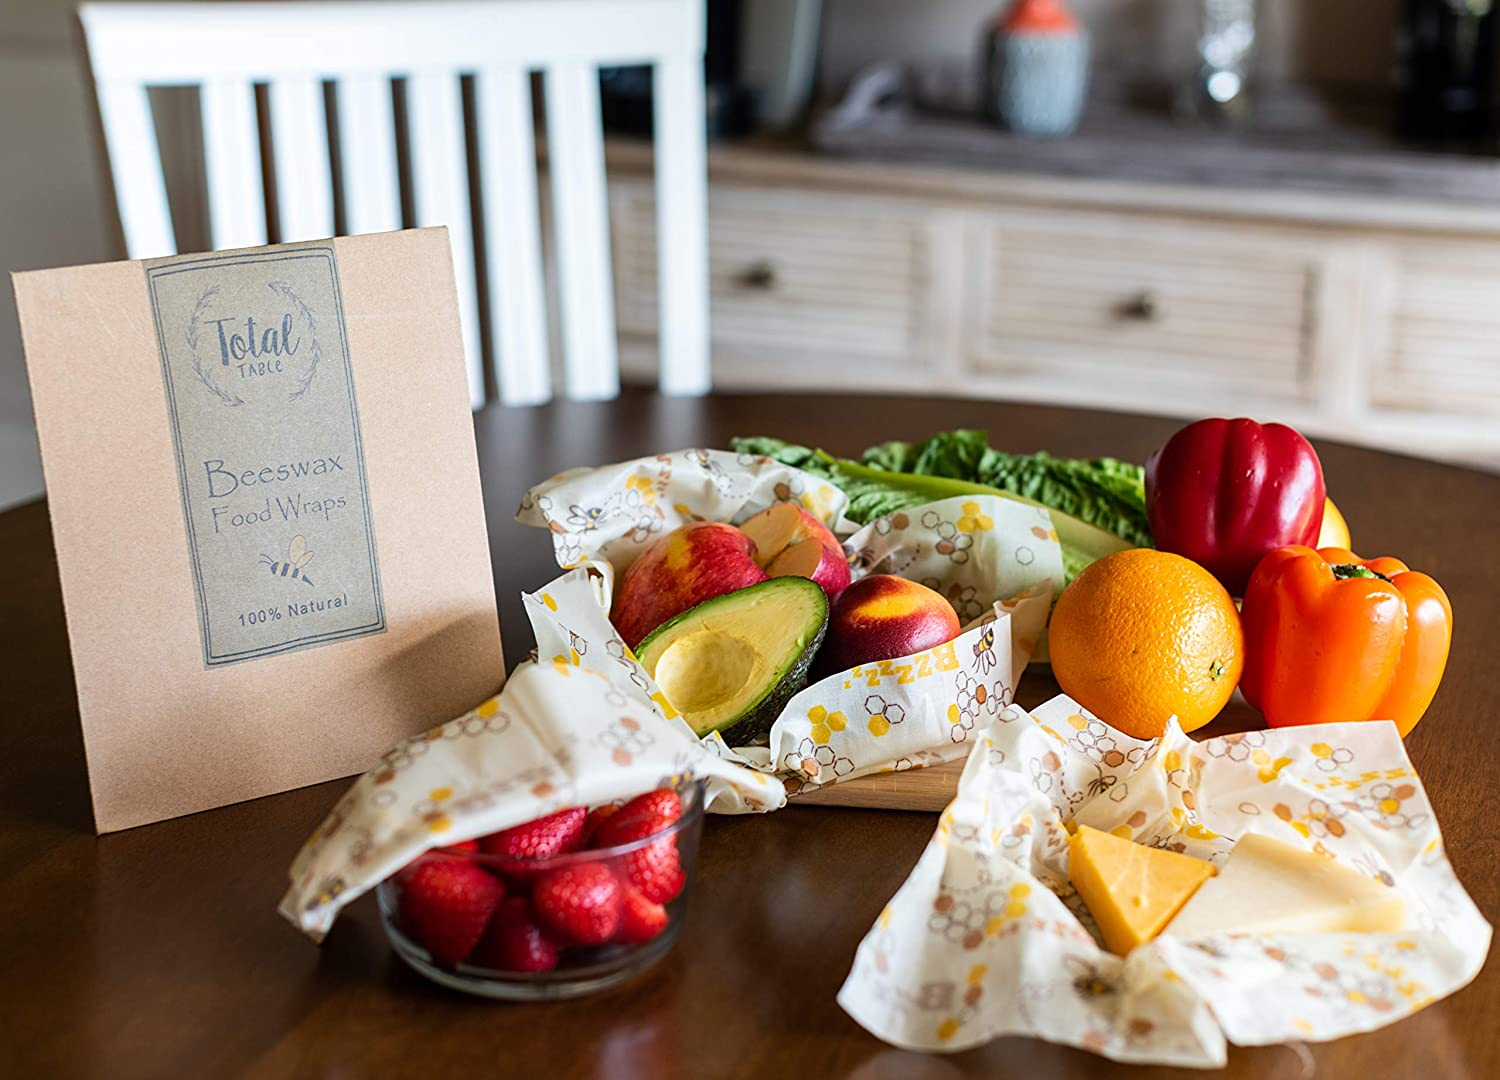 Beeswax Wrap Assorted 3 Pack - Organic Beeswax Reusable Food Wraps - Sustainable, Biodegradable, and Eco-Friendly - Food Storage for a Zero Waste Home